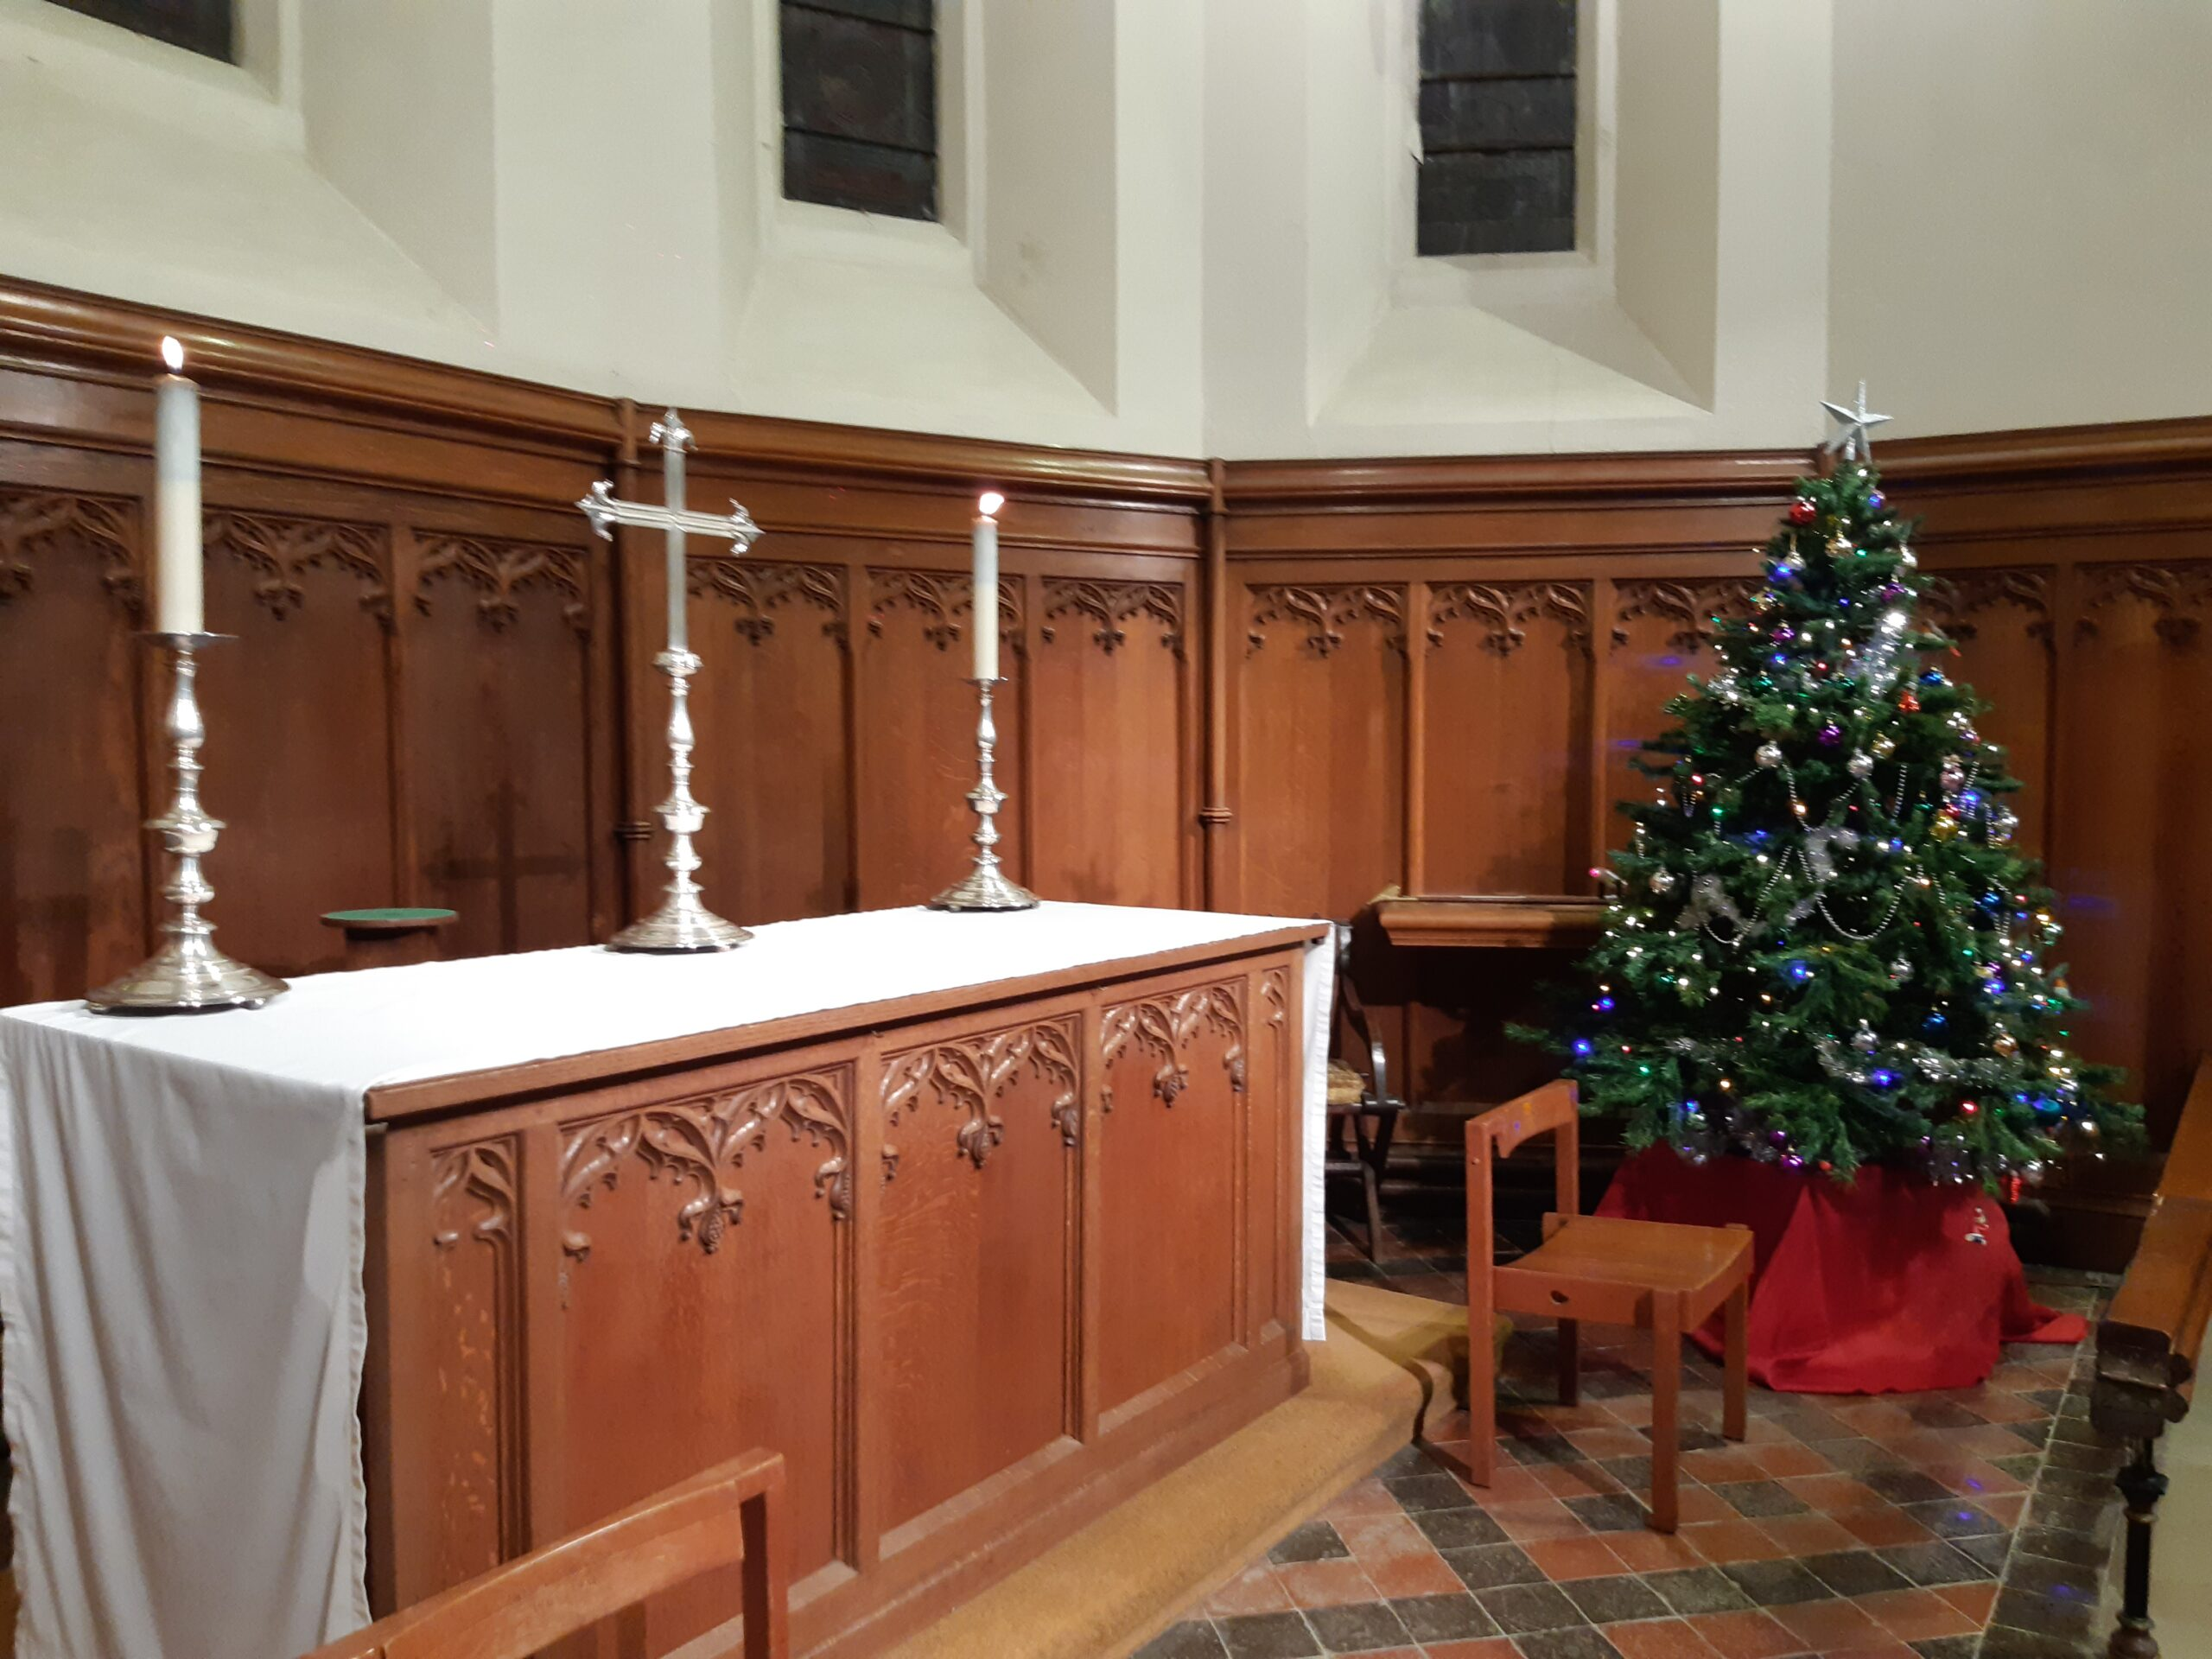 27th December 9.30am Order of Service.